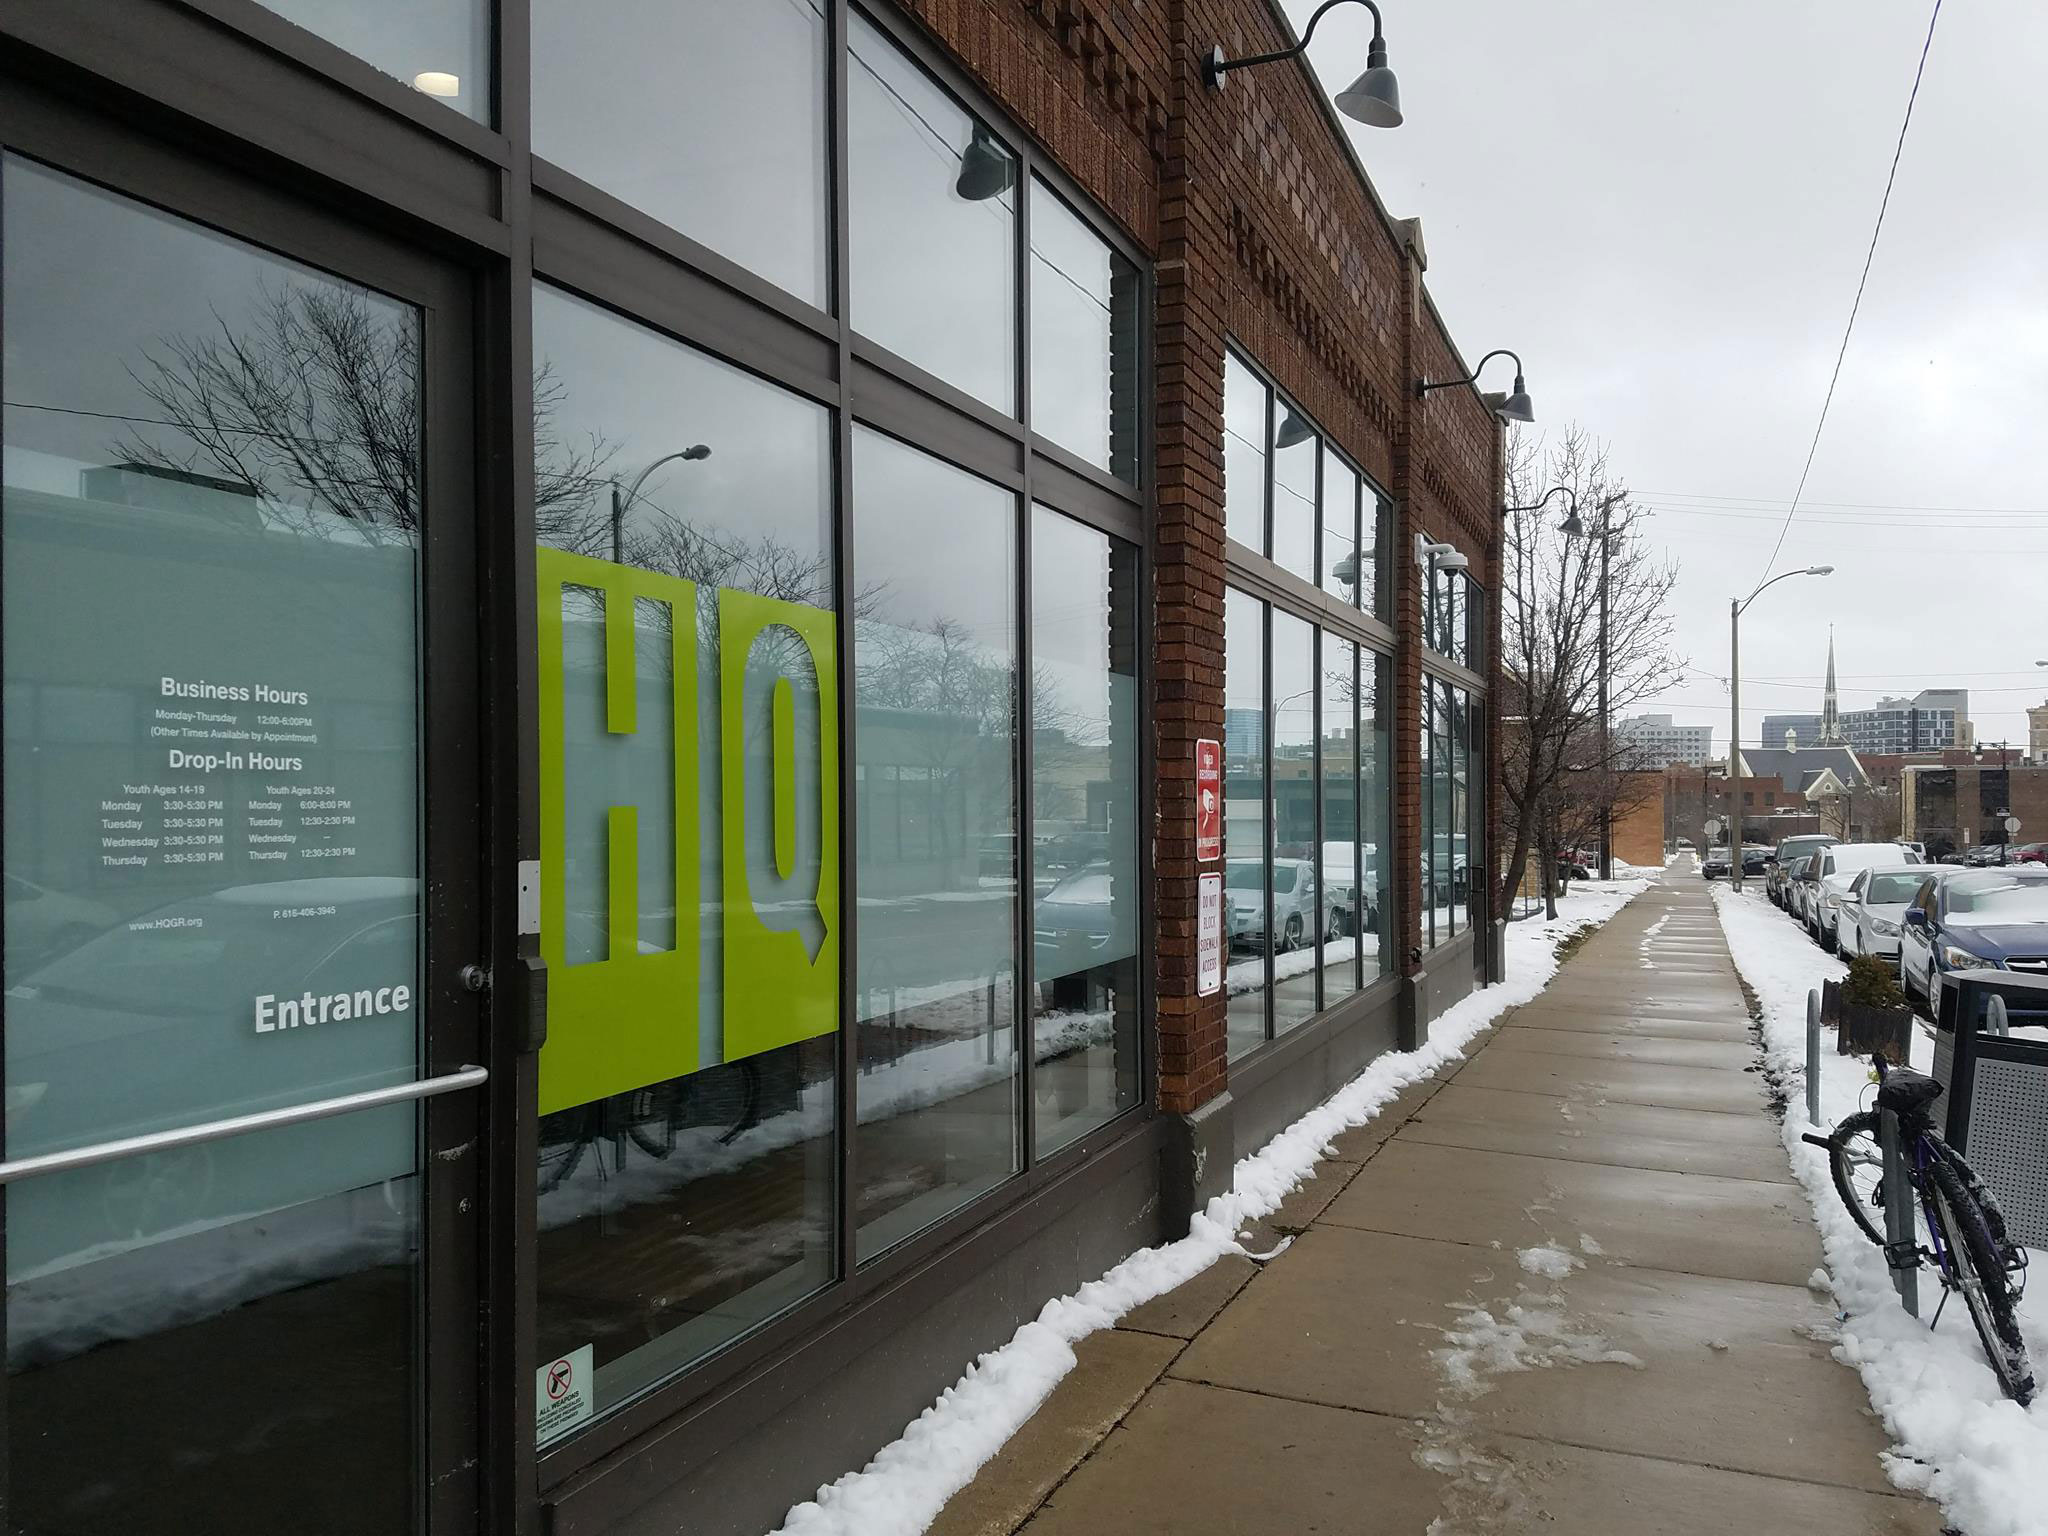 HQ offers drop in hours for homeless youth. Giving them a safe space to go during the day.